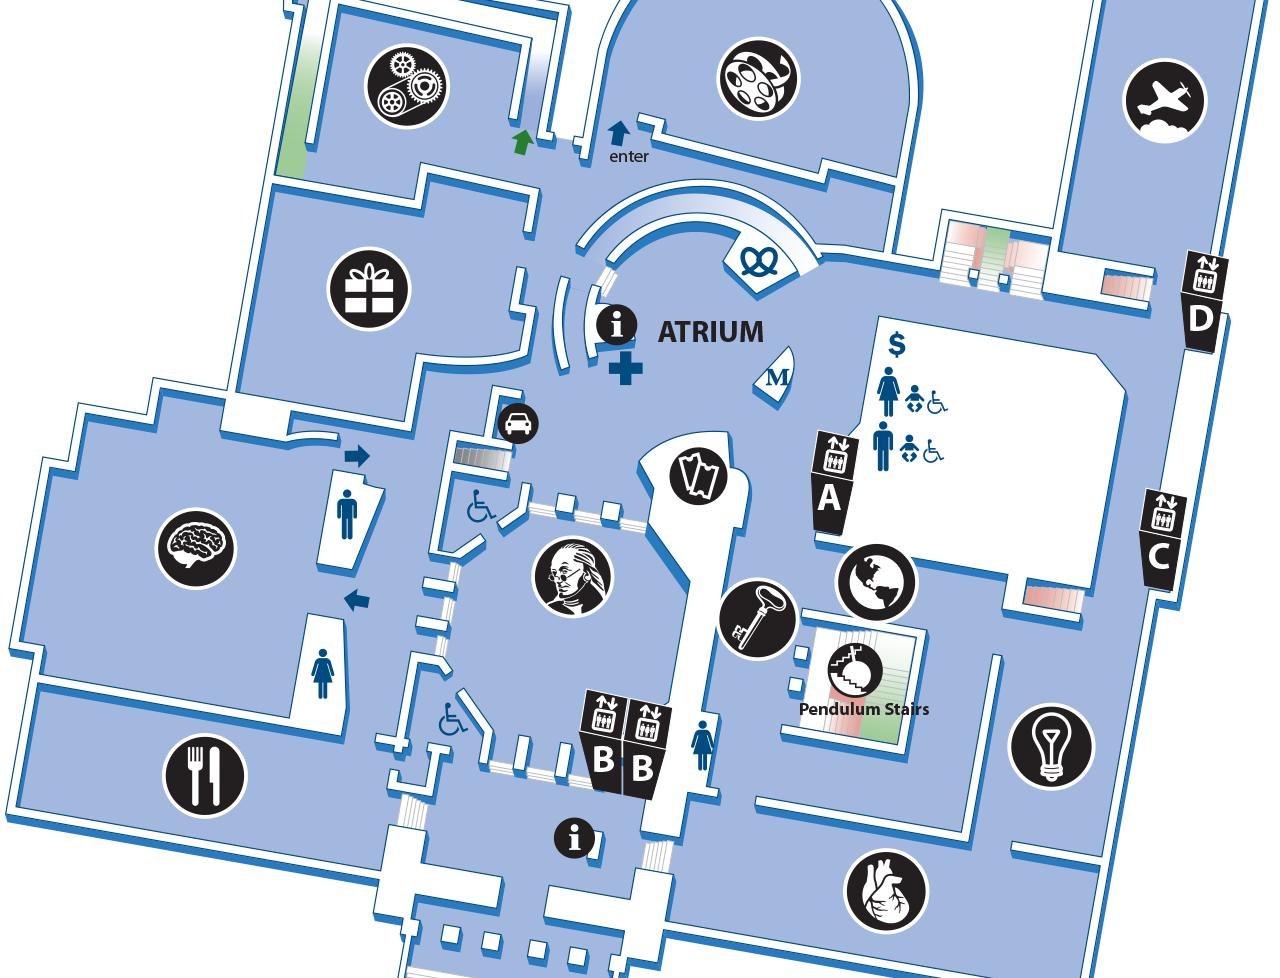 map of the second floor showing the locations of major permanent exhibits the